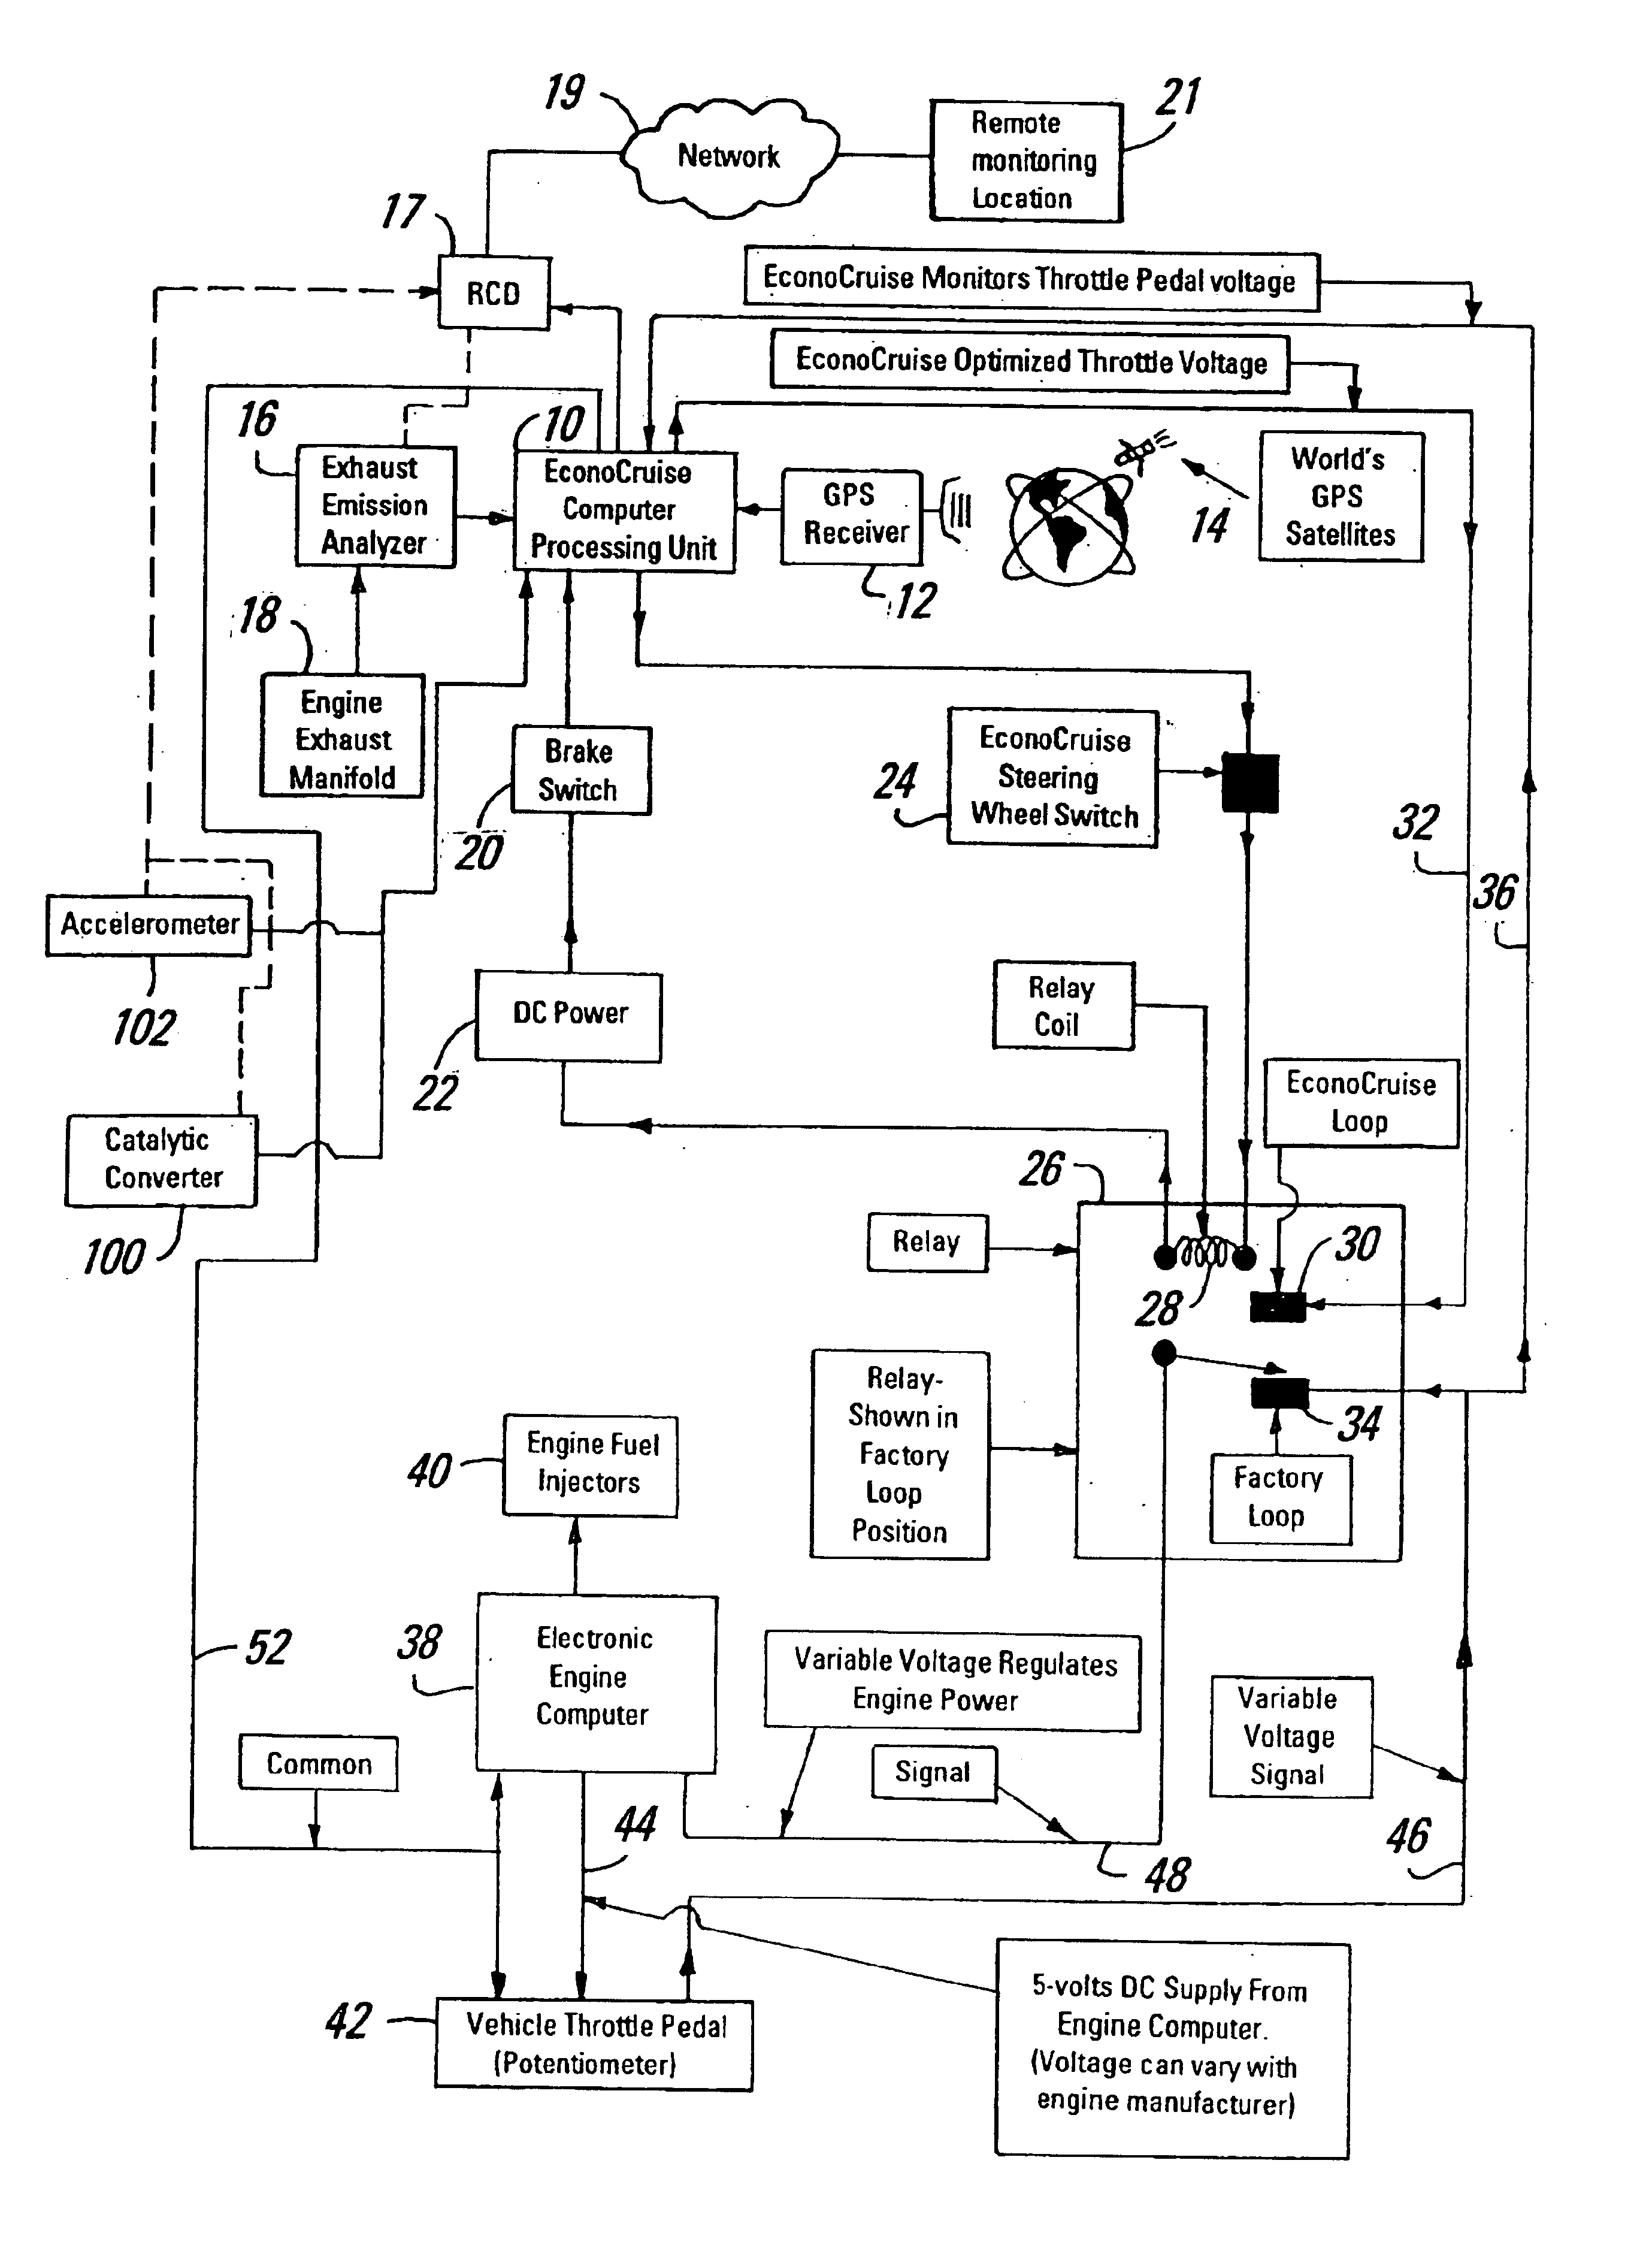 2004 International 4300 Wiring Diagrams Opinions About Engine Diagram Patent Us6845314 Method And Apparatus For Remote Communication Of Vehicle Combustion A C